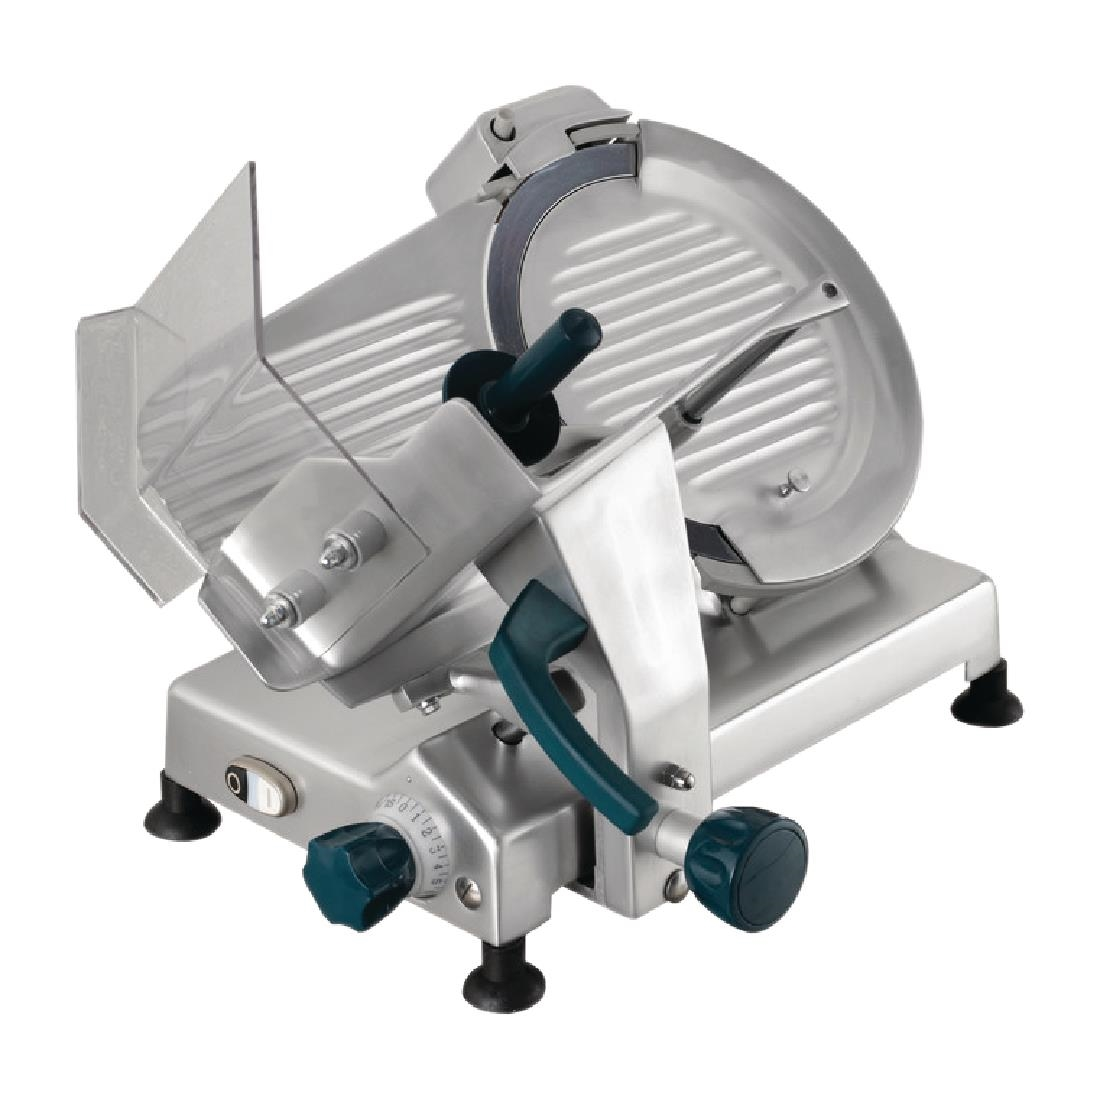 Hobart Food Slicer SL300